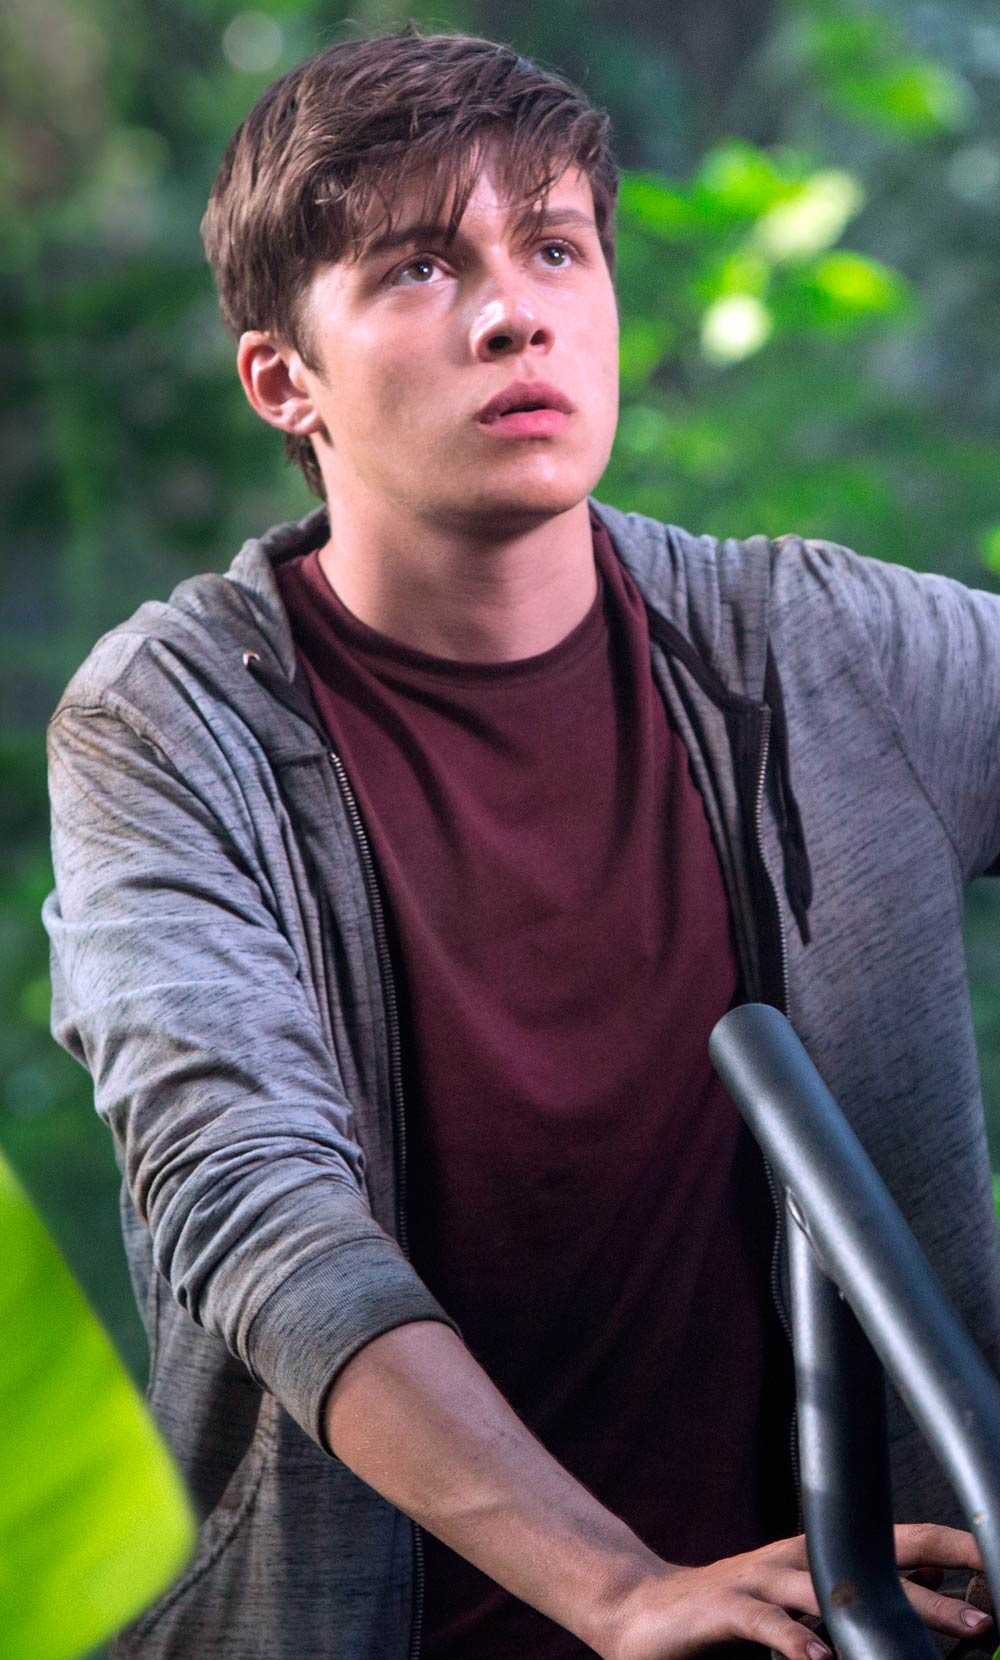 Nick Robinson Foto Jurassic World 1 De 2